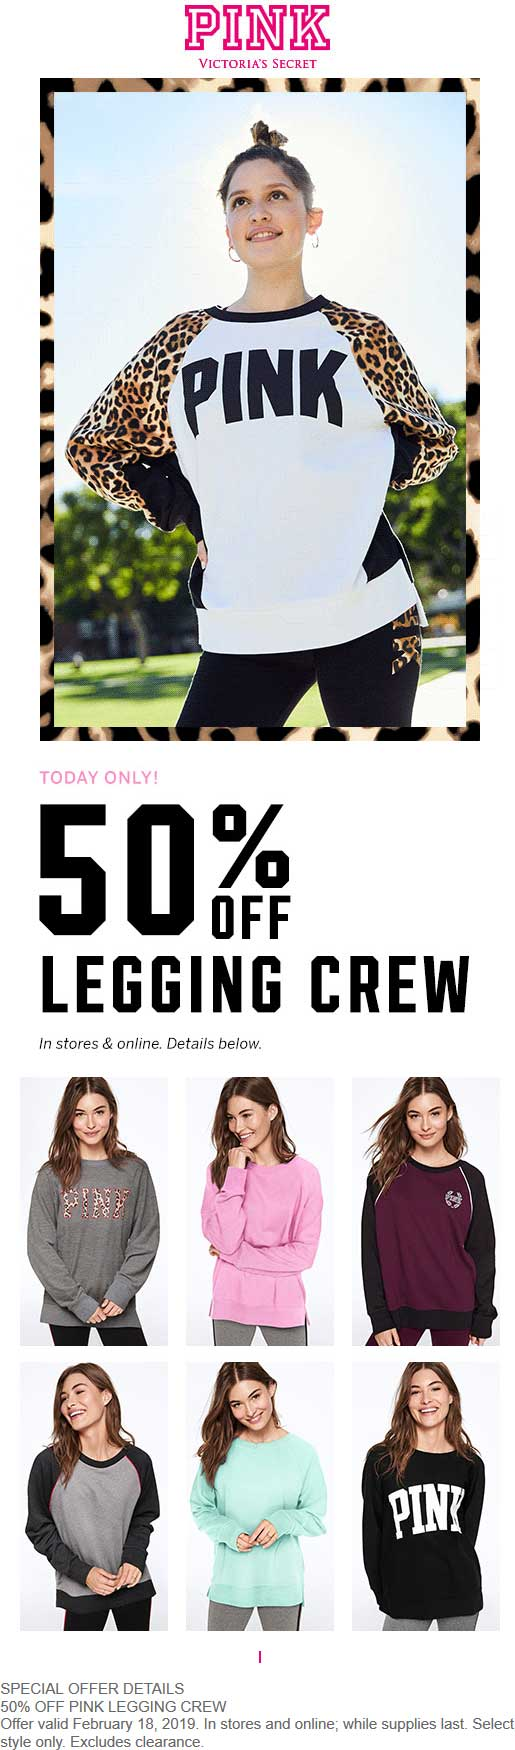 PINK Coupon July 2020 50% off legging crew today at Victorias Secret PINK, ditto online